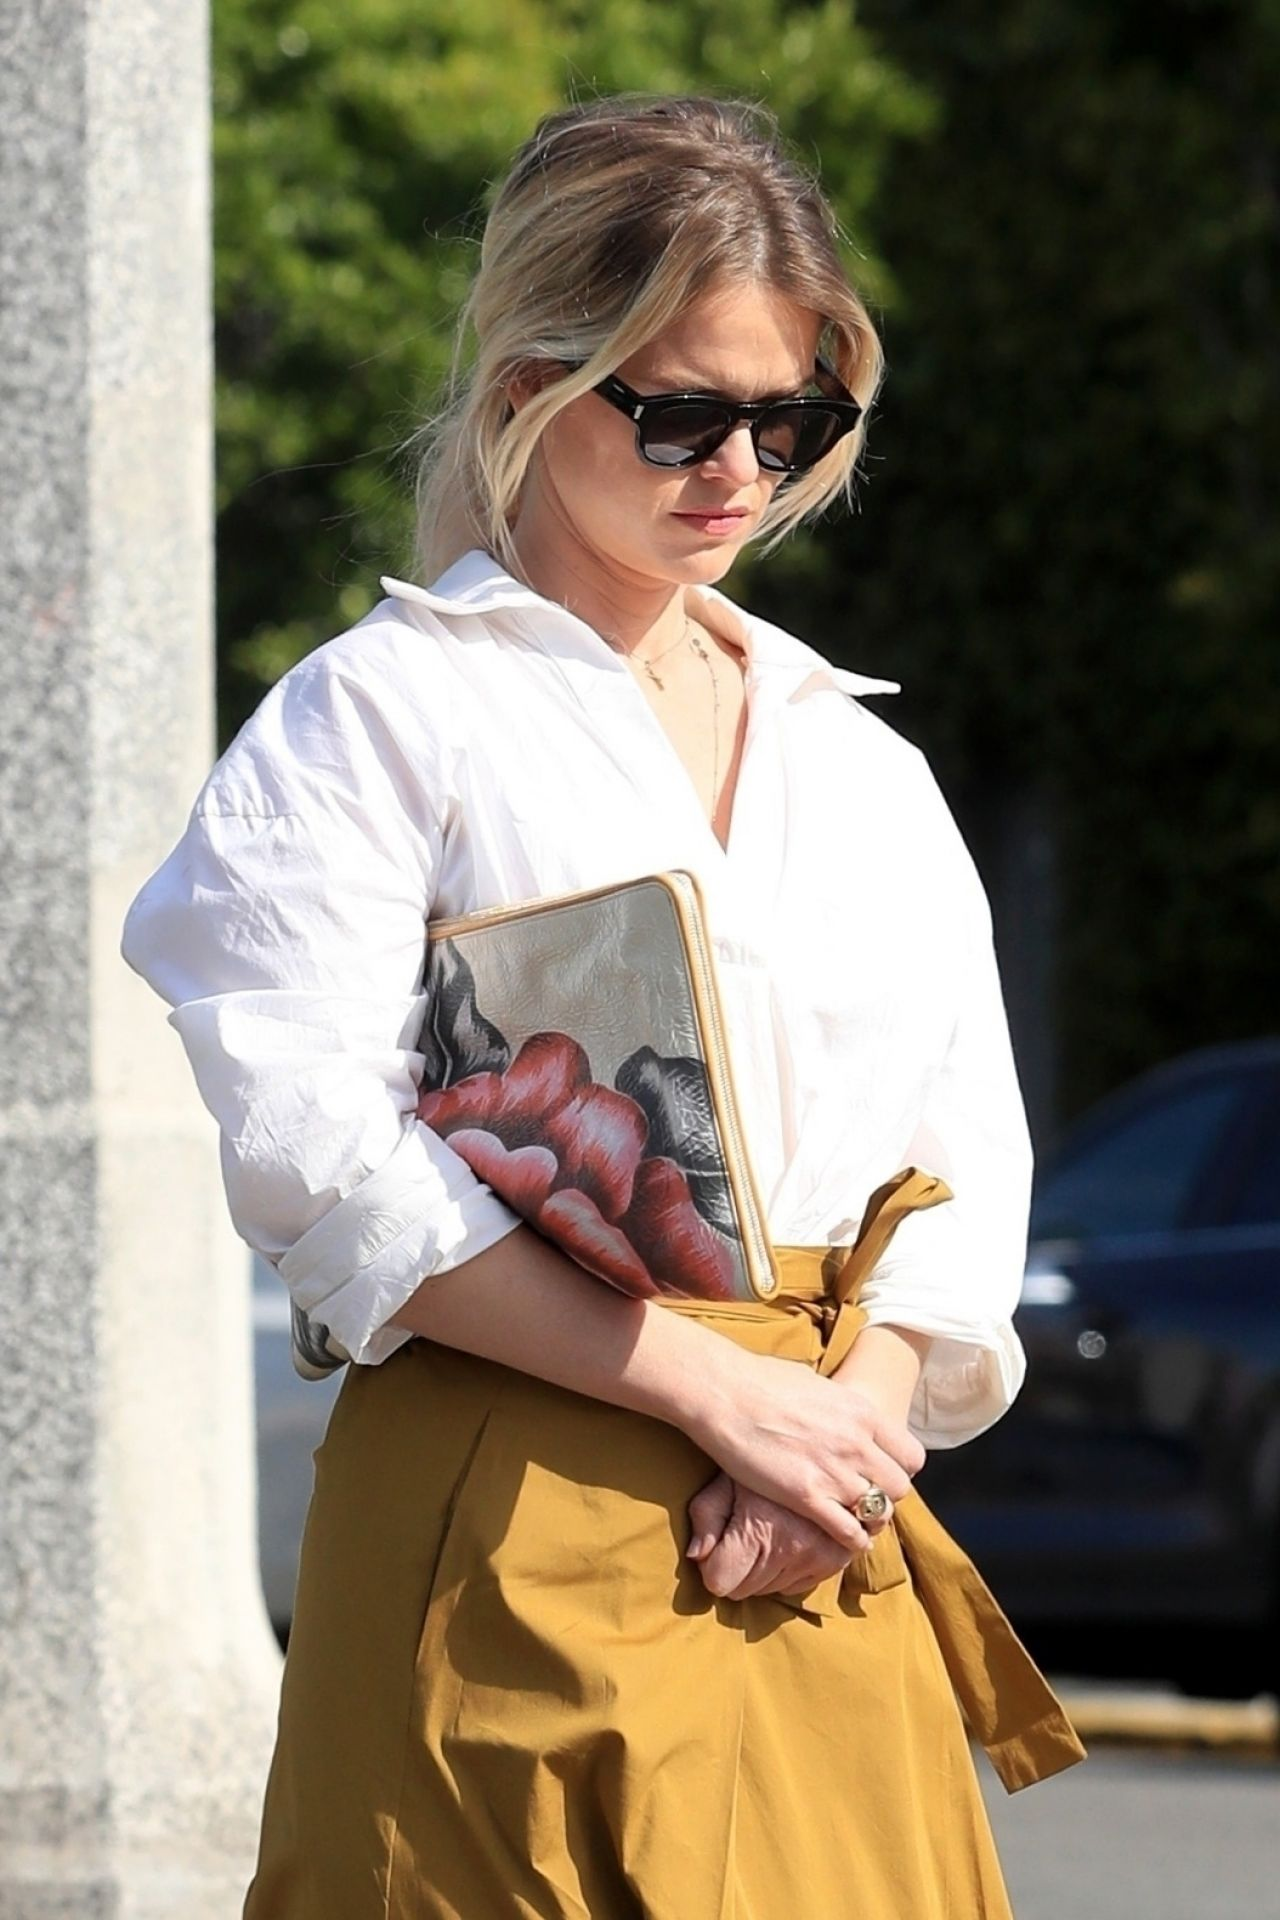 Alice Eve Cute Style Out In Hollywood 03 22 2019